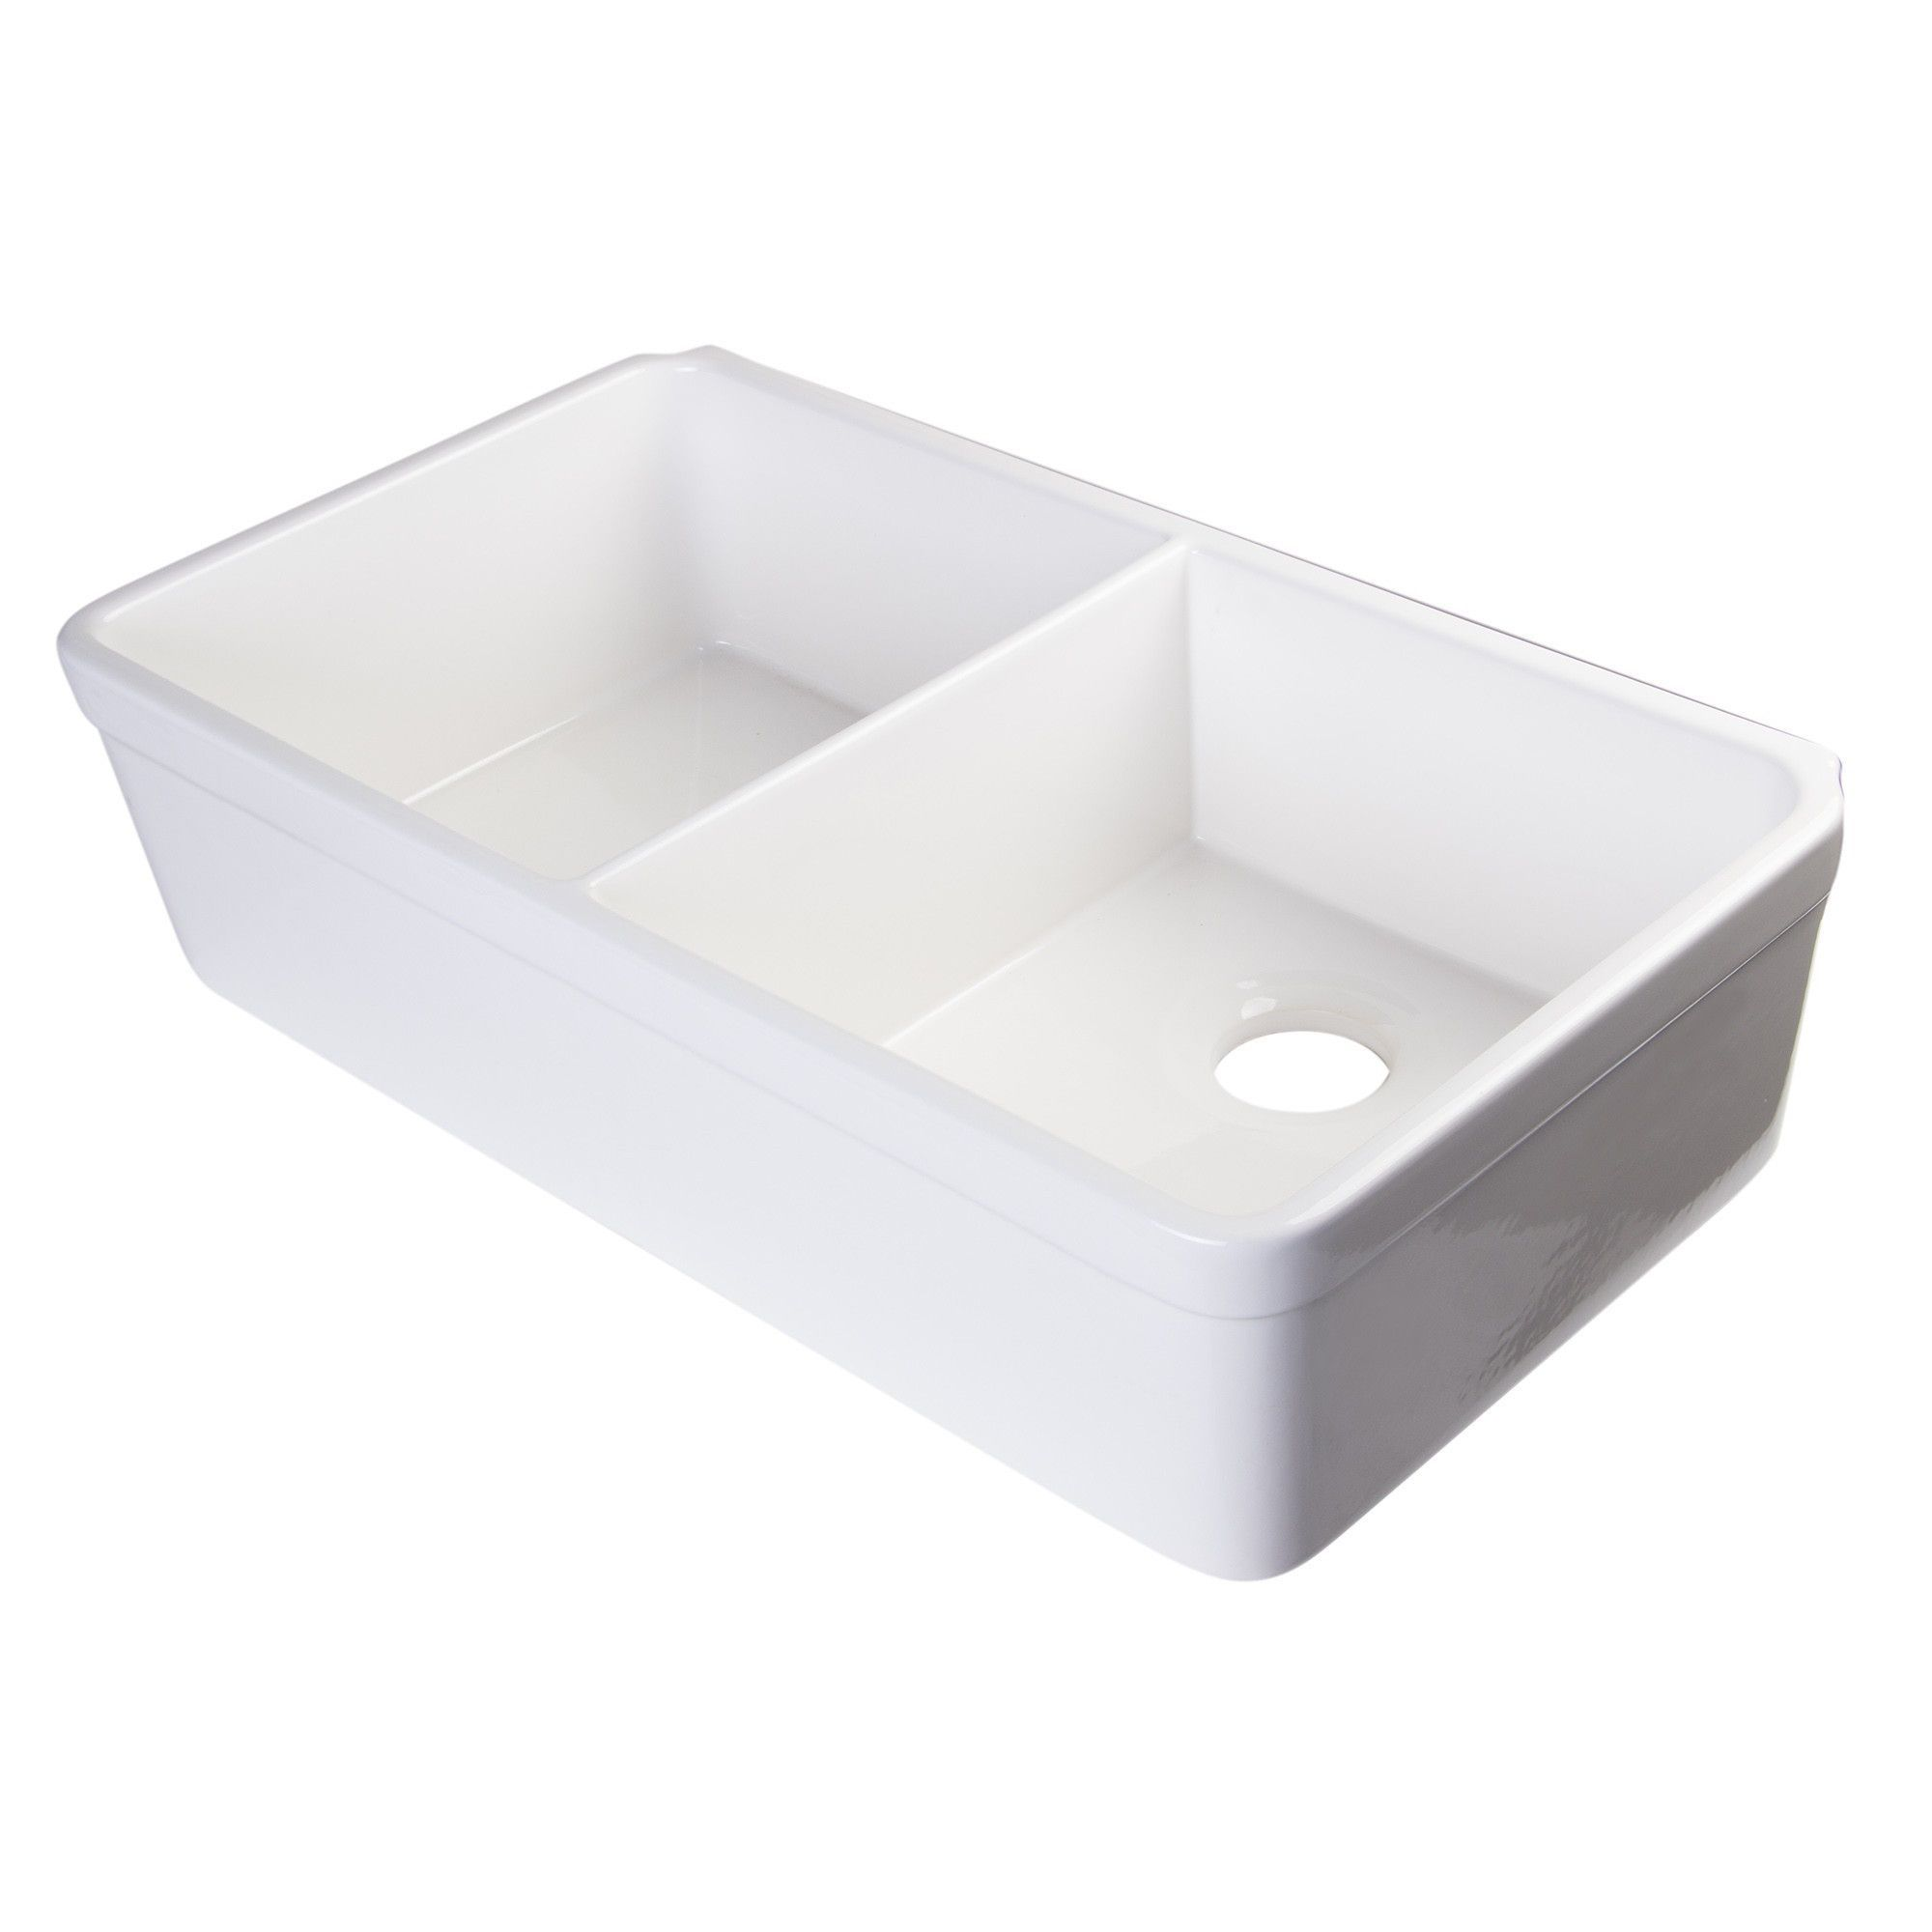 Alfi Brand Ab512 W White 32 Double Bowl Fireclay Farmhouse Kitchen Sink With 1 3 4 Li Farmhouse Apron Kitchen Sinks Apron Sink Kitchen Farmhouse Sink Kitchen